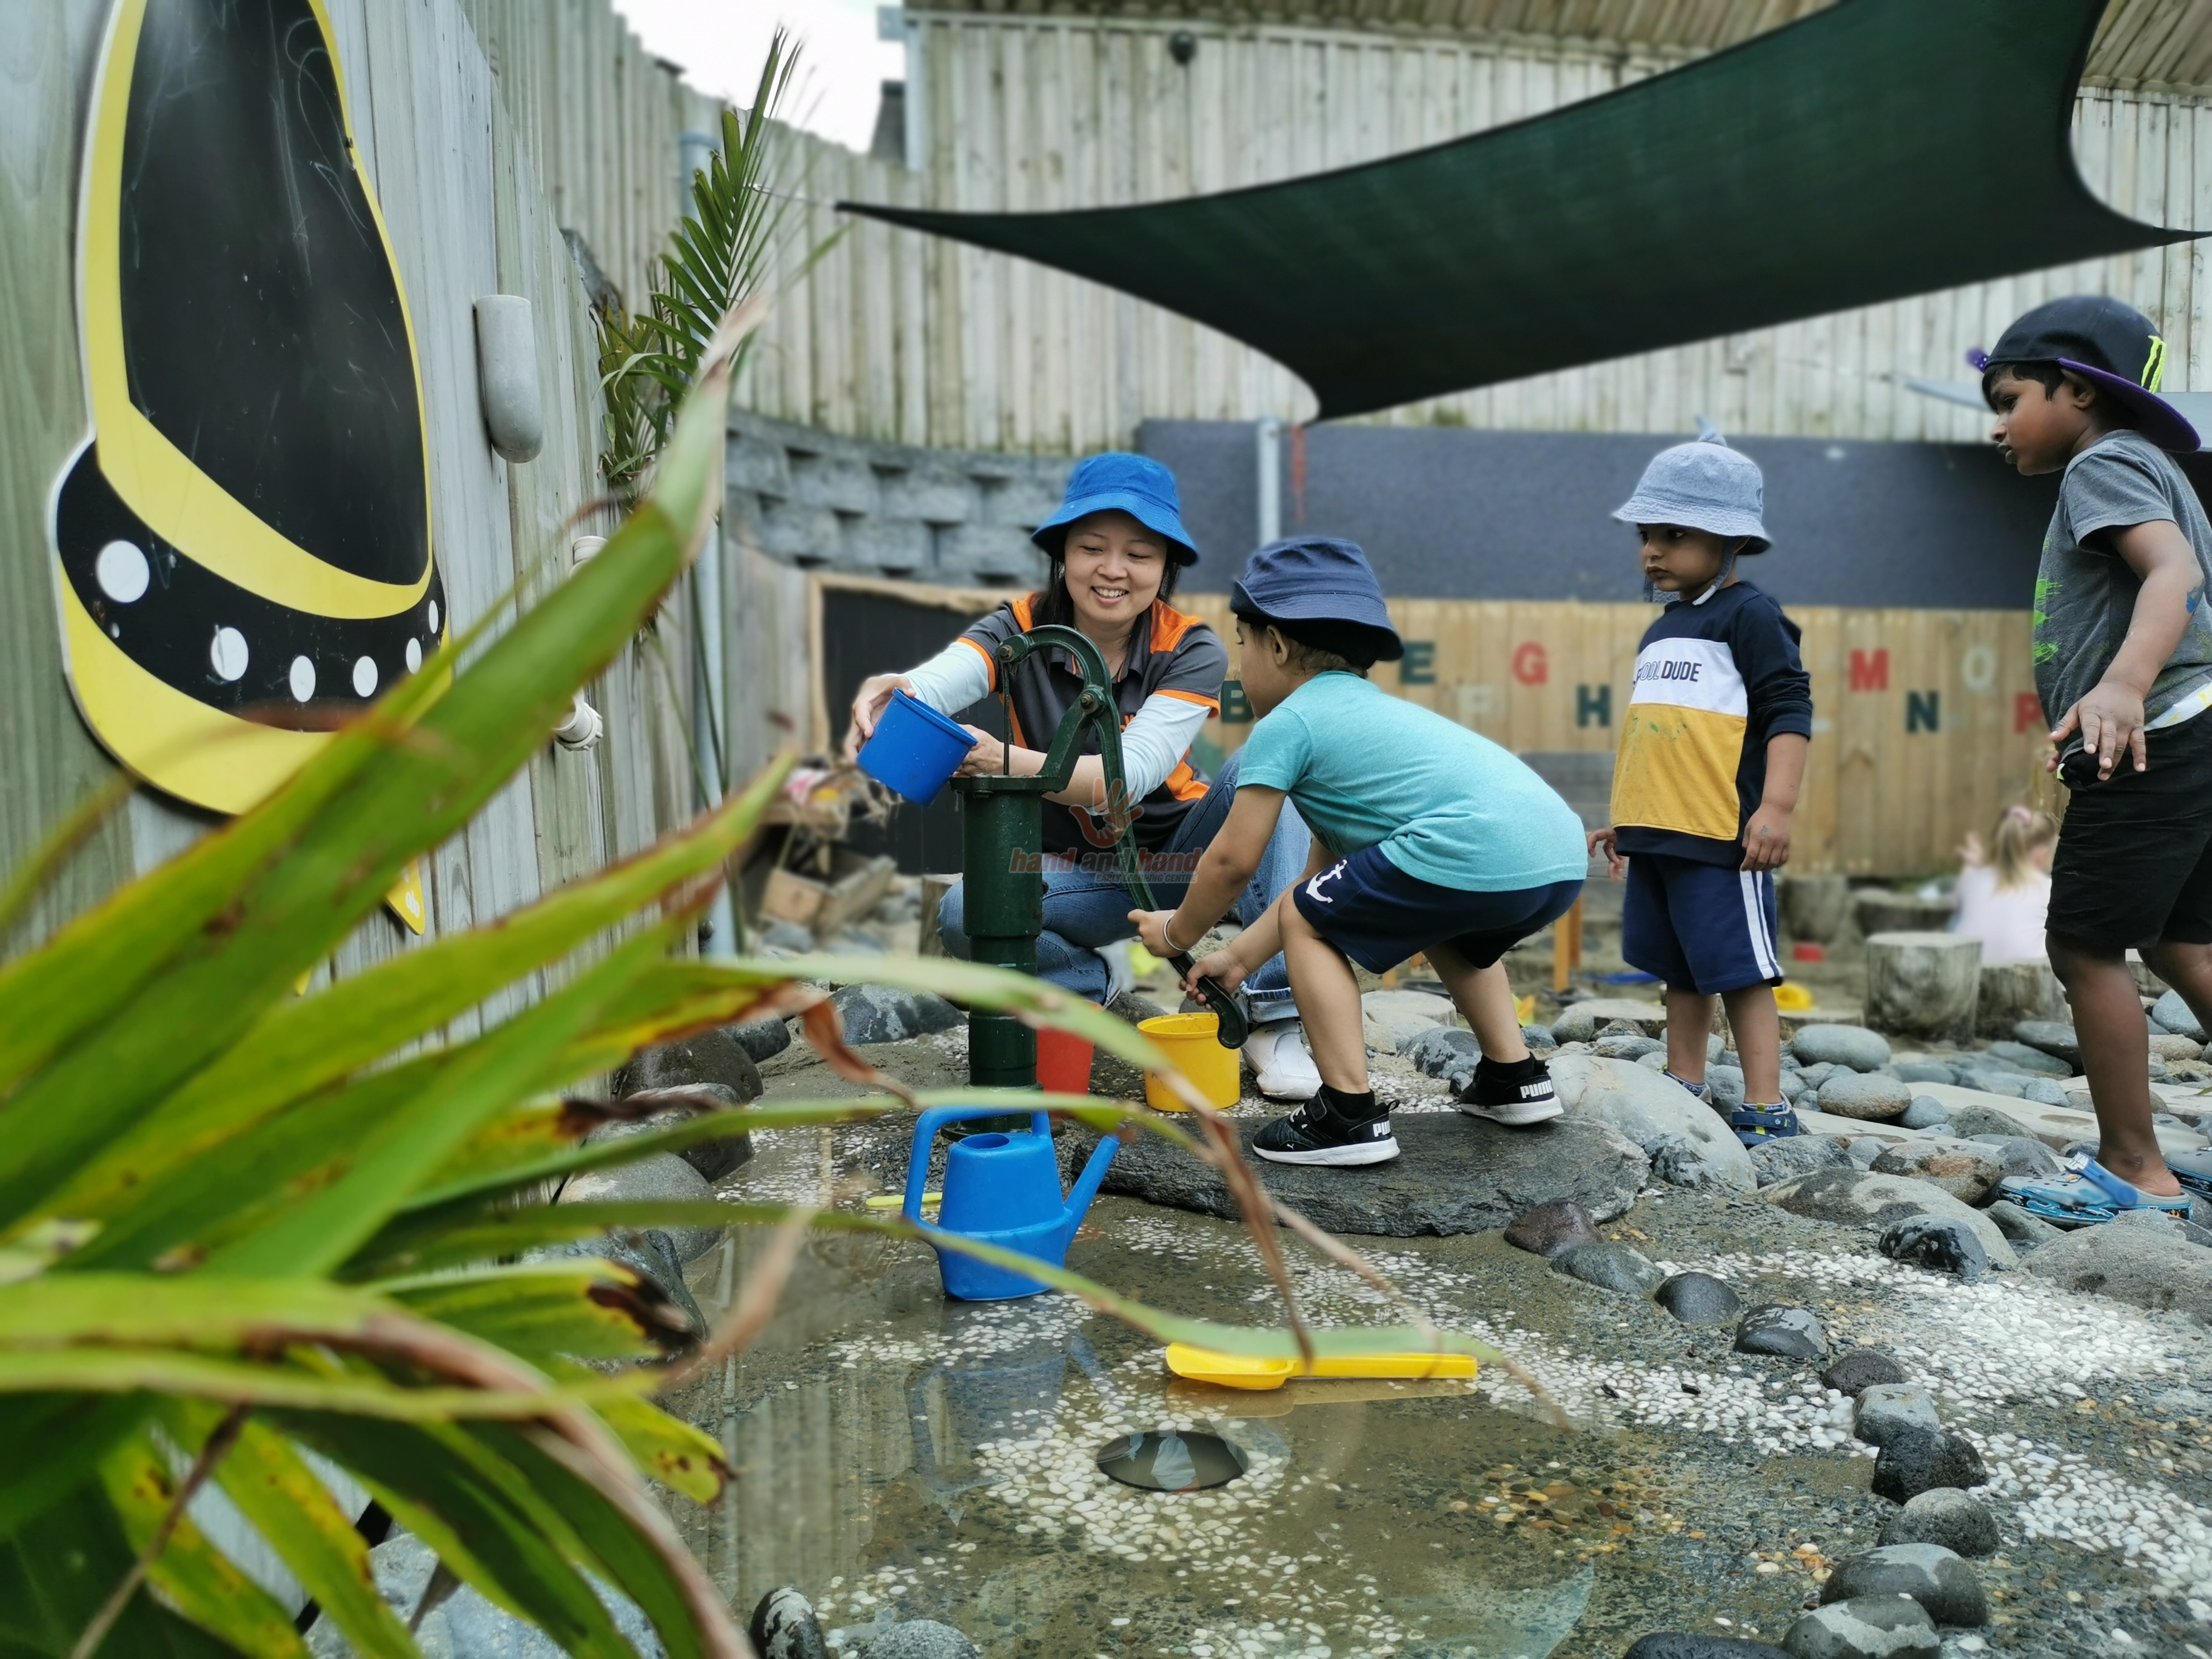 handandhand-flat-bush-early-learning-centre-IMG_20191127_114117-20200205022021954-watermarked